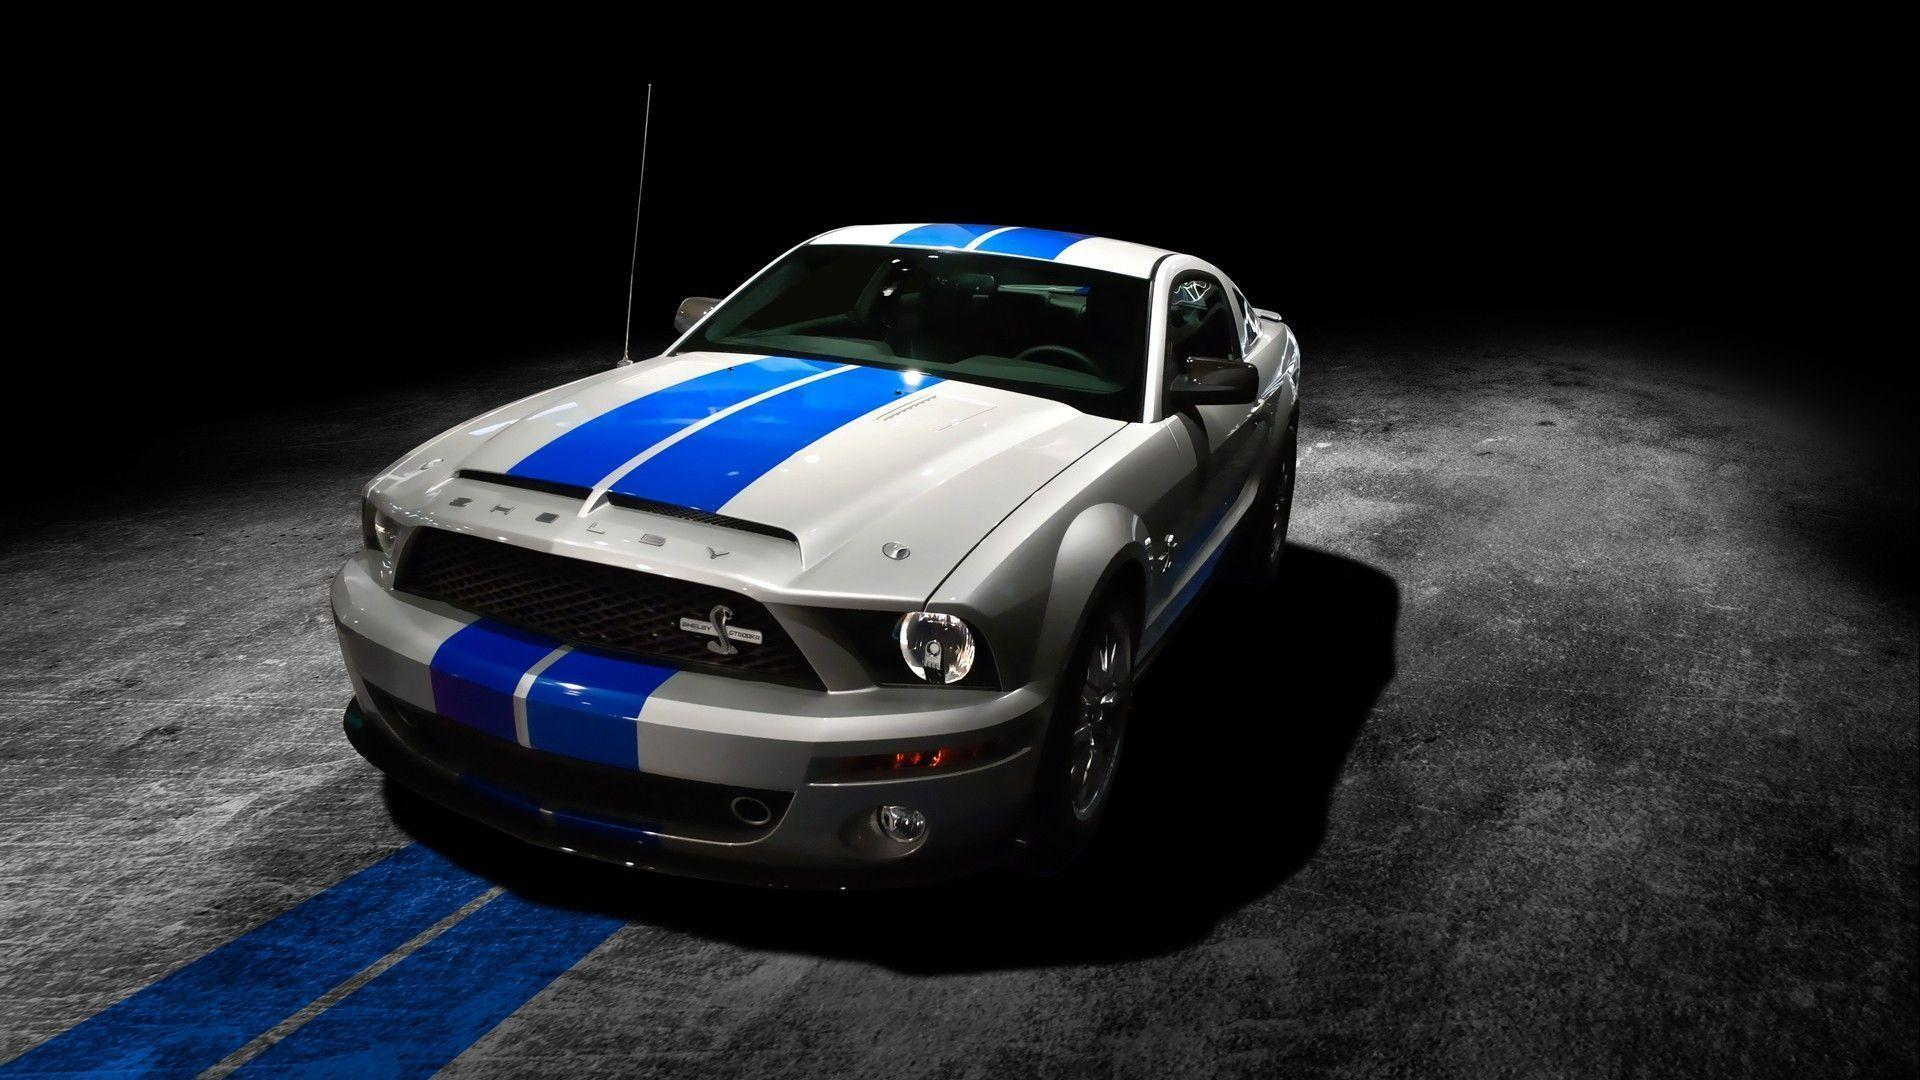 Car Wallpapers 1920x1080 - Wallpaper Cave Hd Wallpapers 1920x1080 Cars